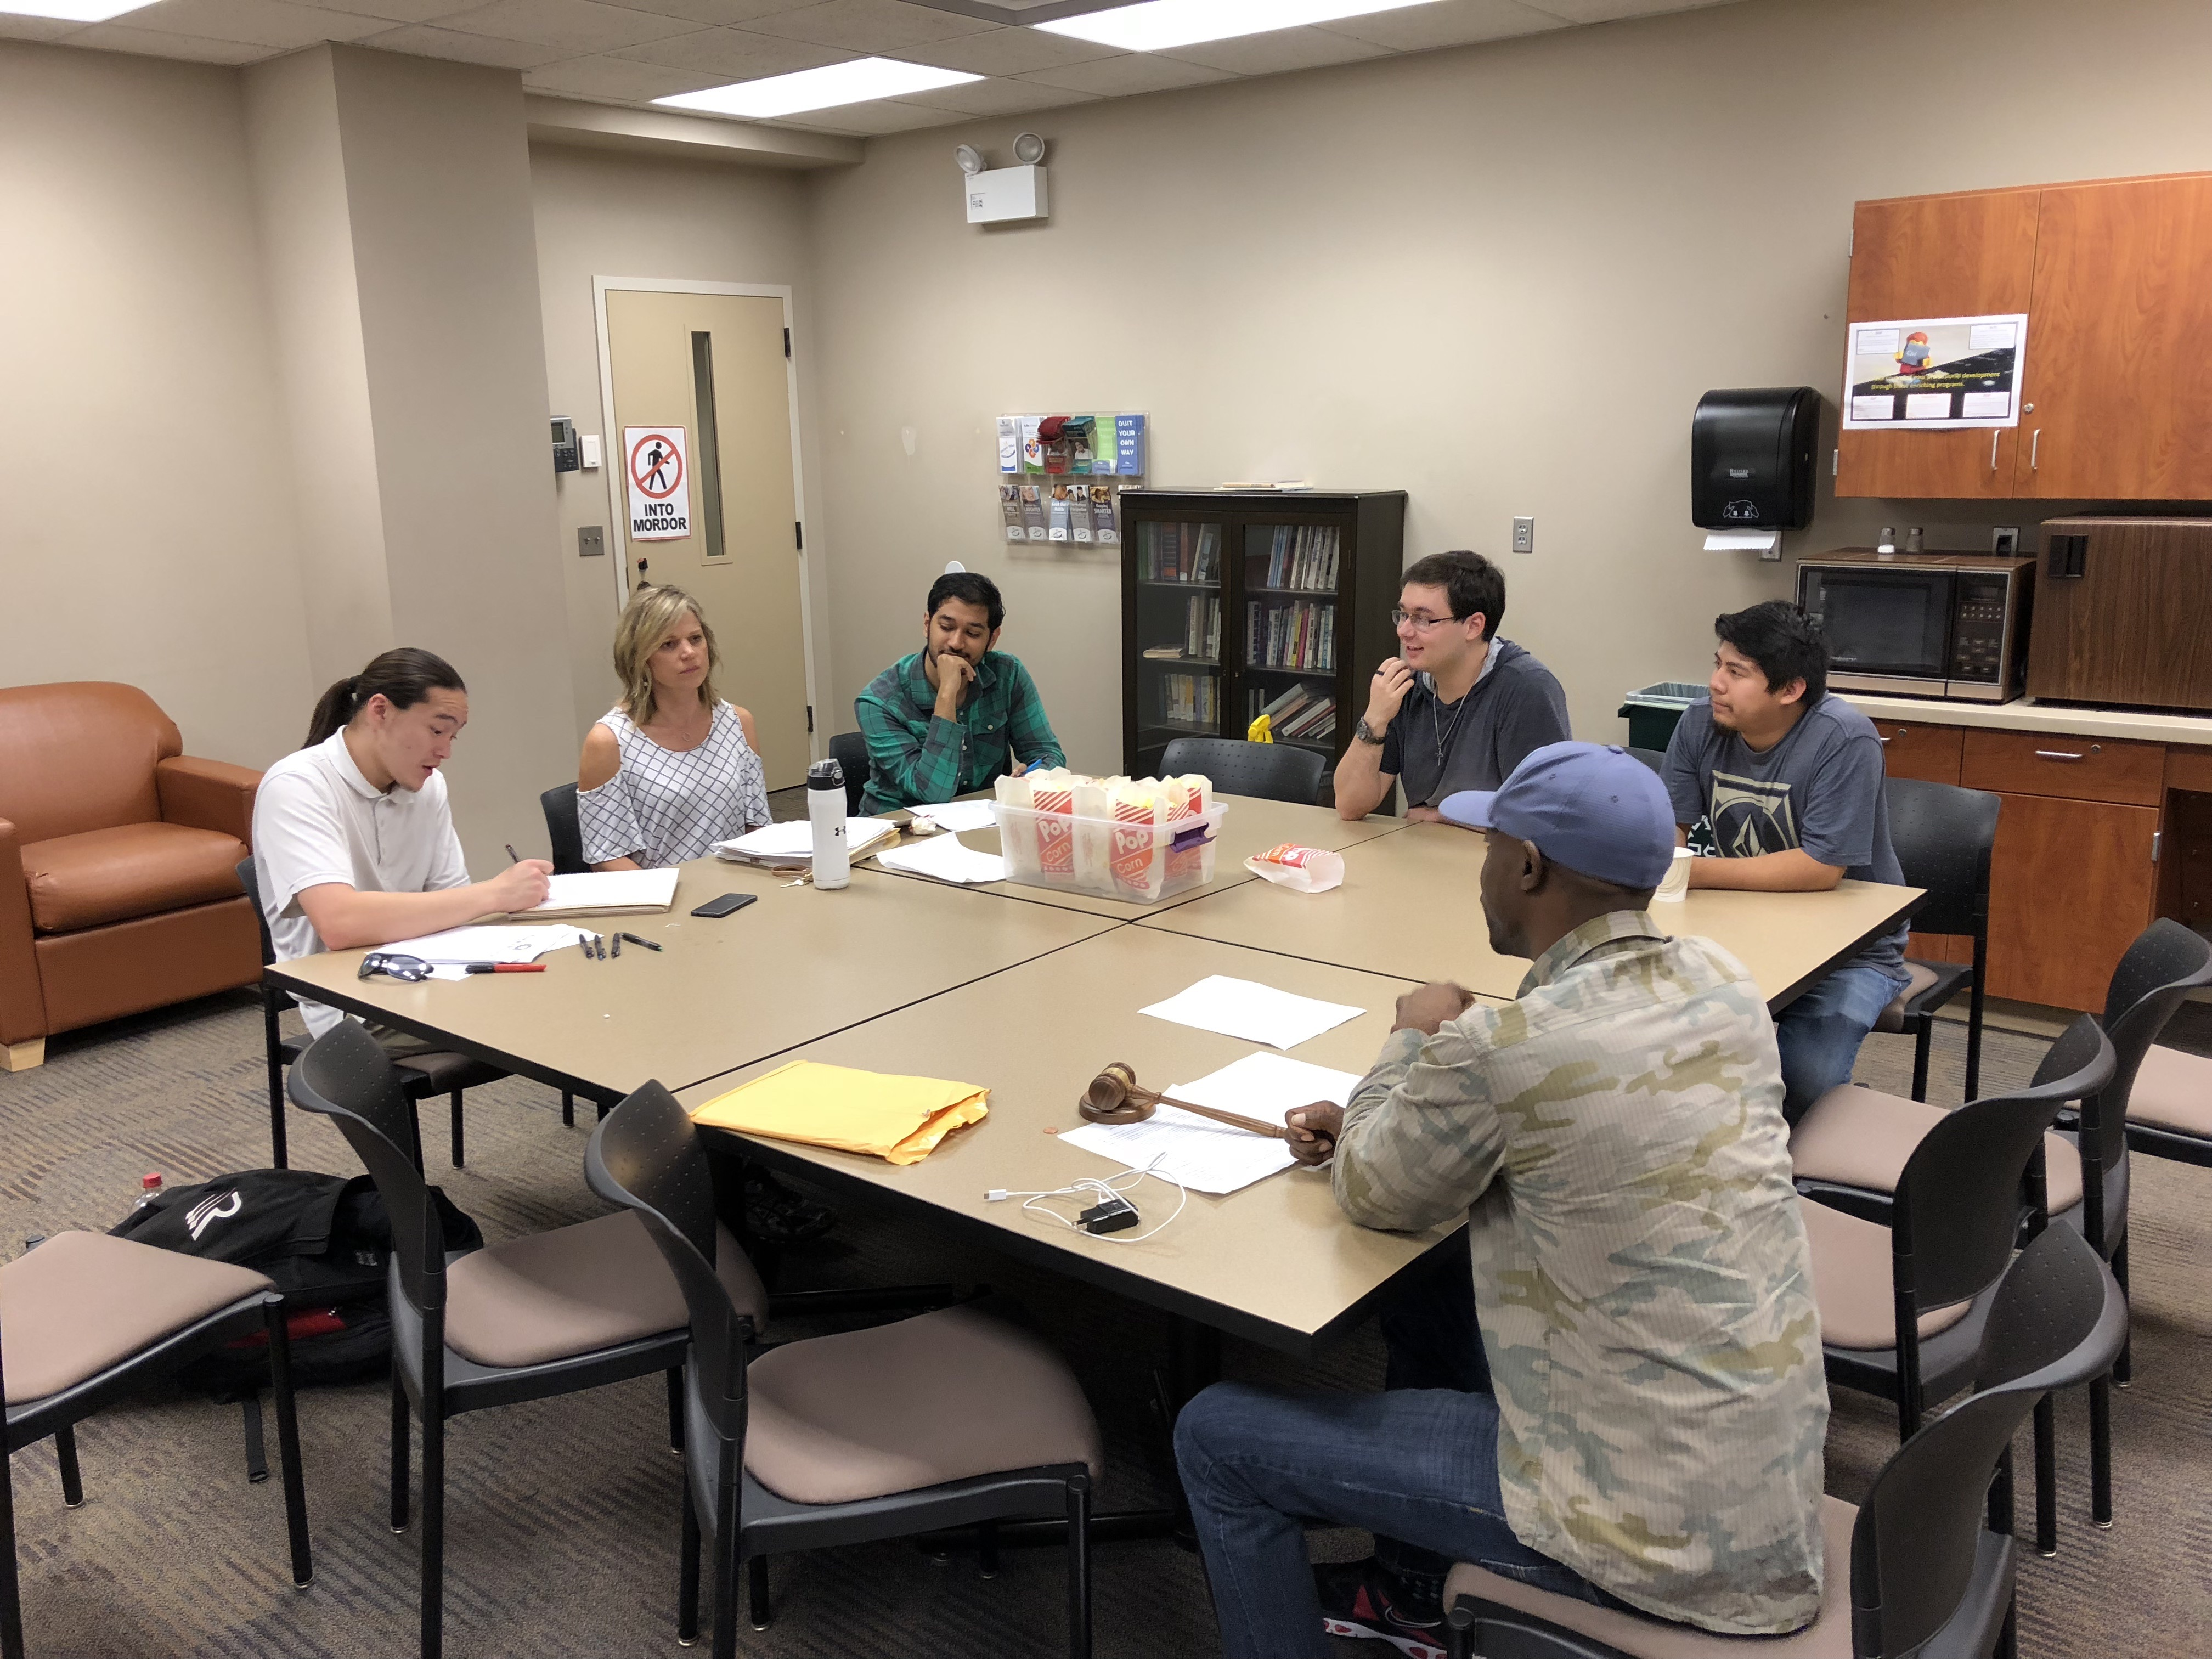 Student senate members meet on Sept. 19 on the Coon Rapids campus. The Coon Rapids Student Senate meets every Wednesday at 2 p.m.  Photo by Jeffrey Leonard